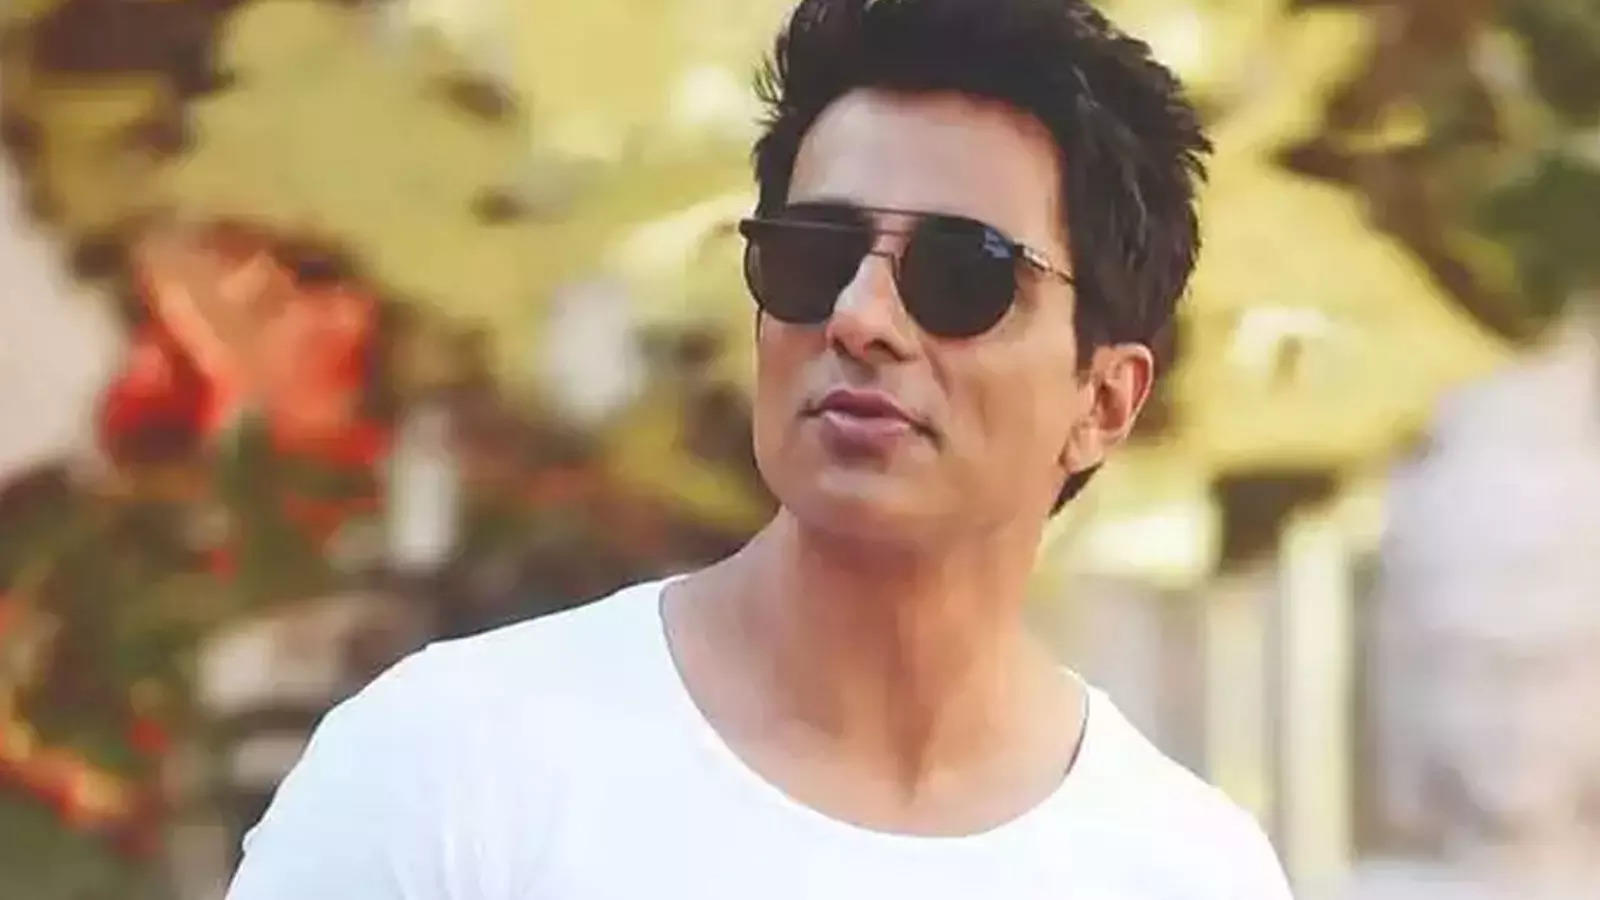 income-tax-department-conducts-surveys-at-sonu-soods-house-for-the-second-day-in-a-row-fans-trend-istandwithsonusood-on-twitter